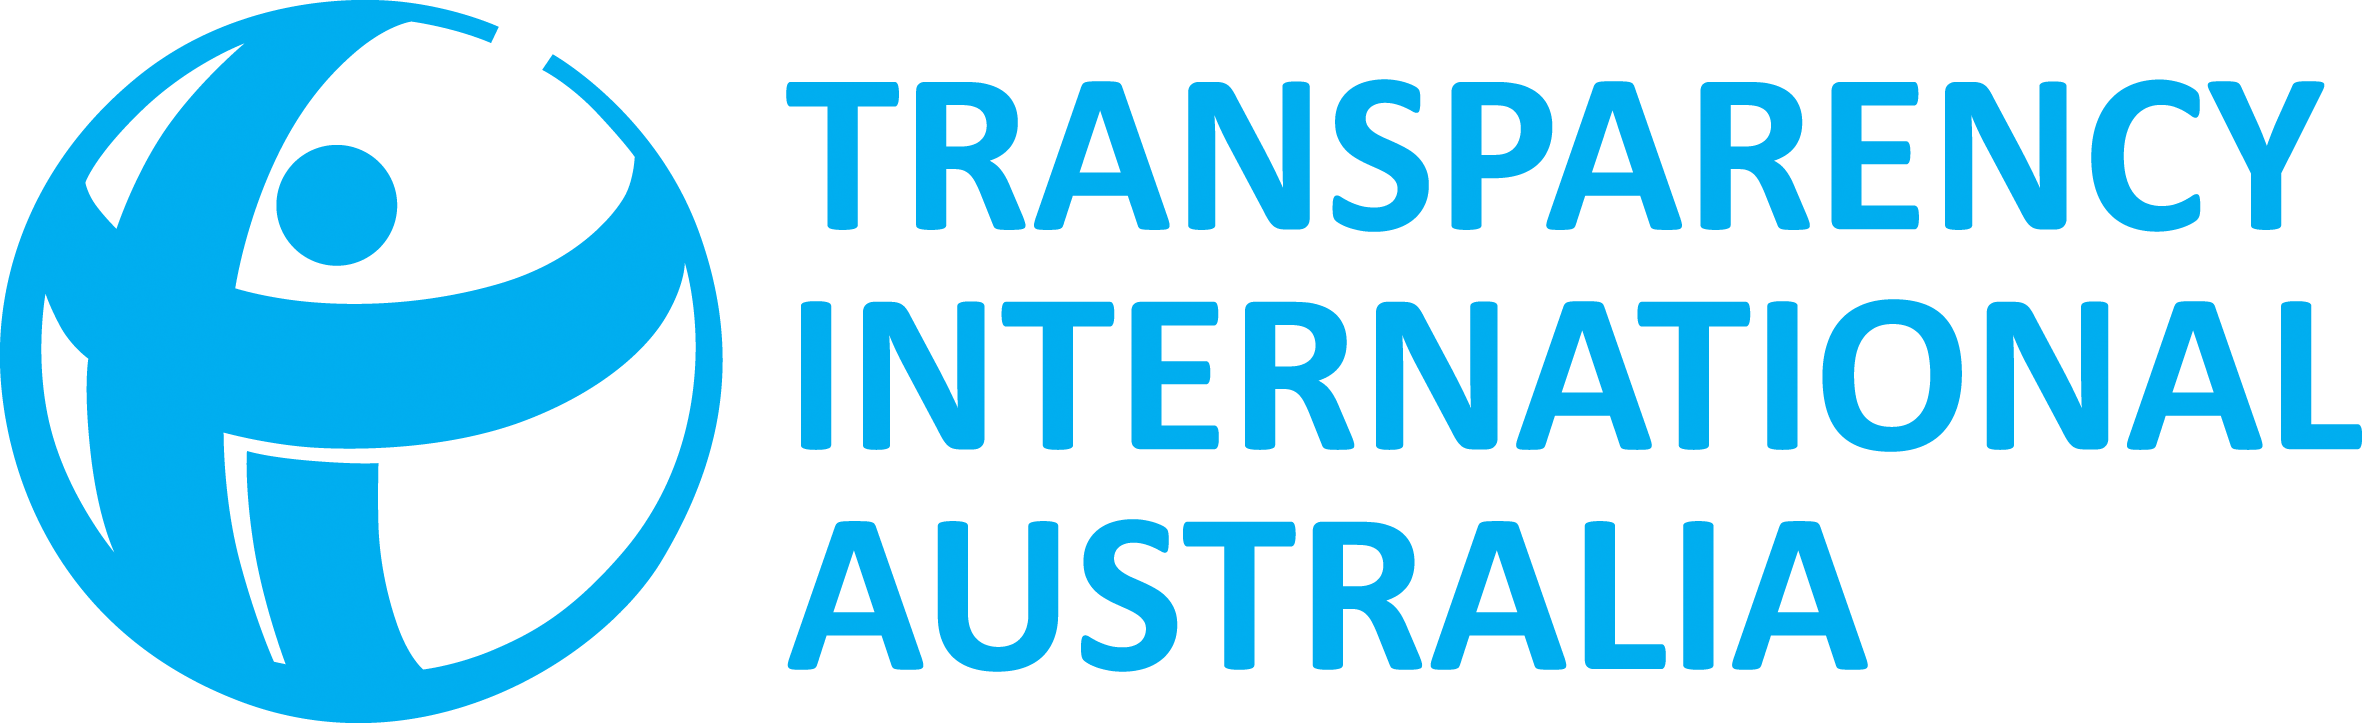 Transparency International Australia